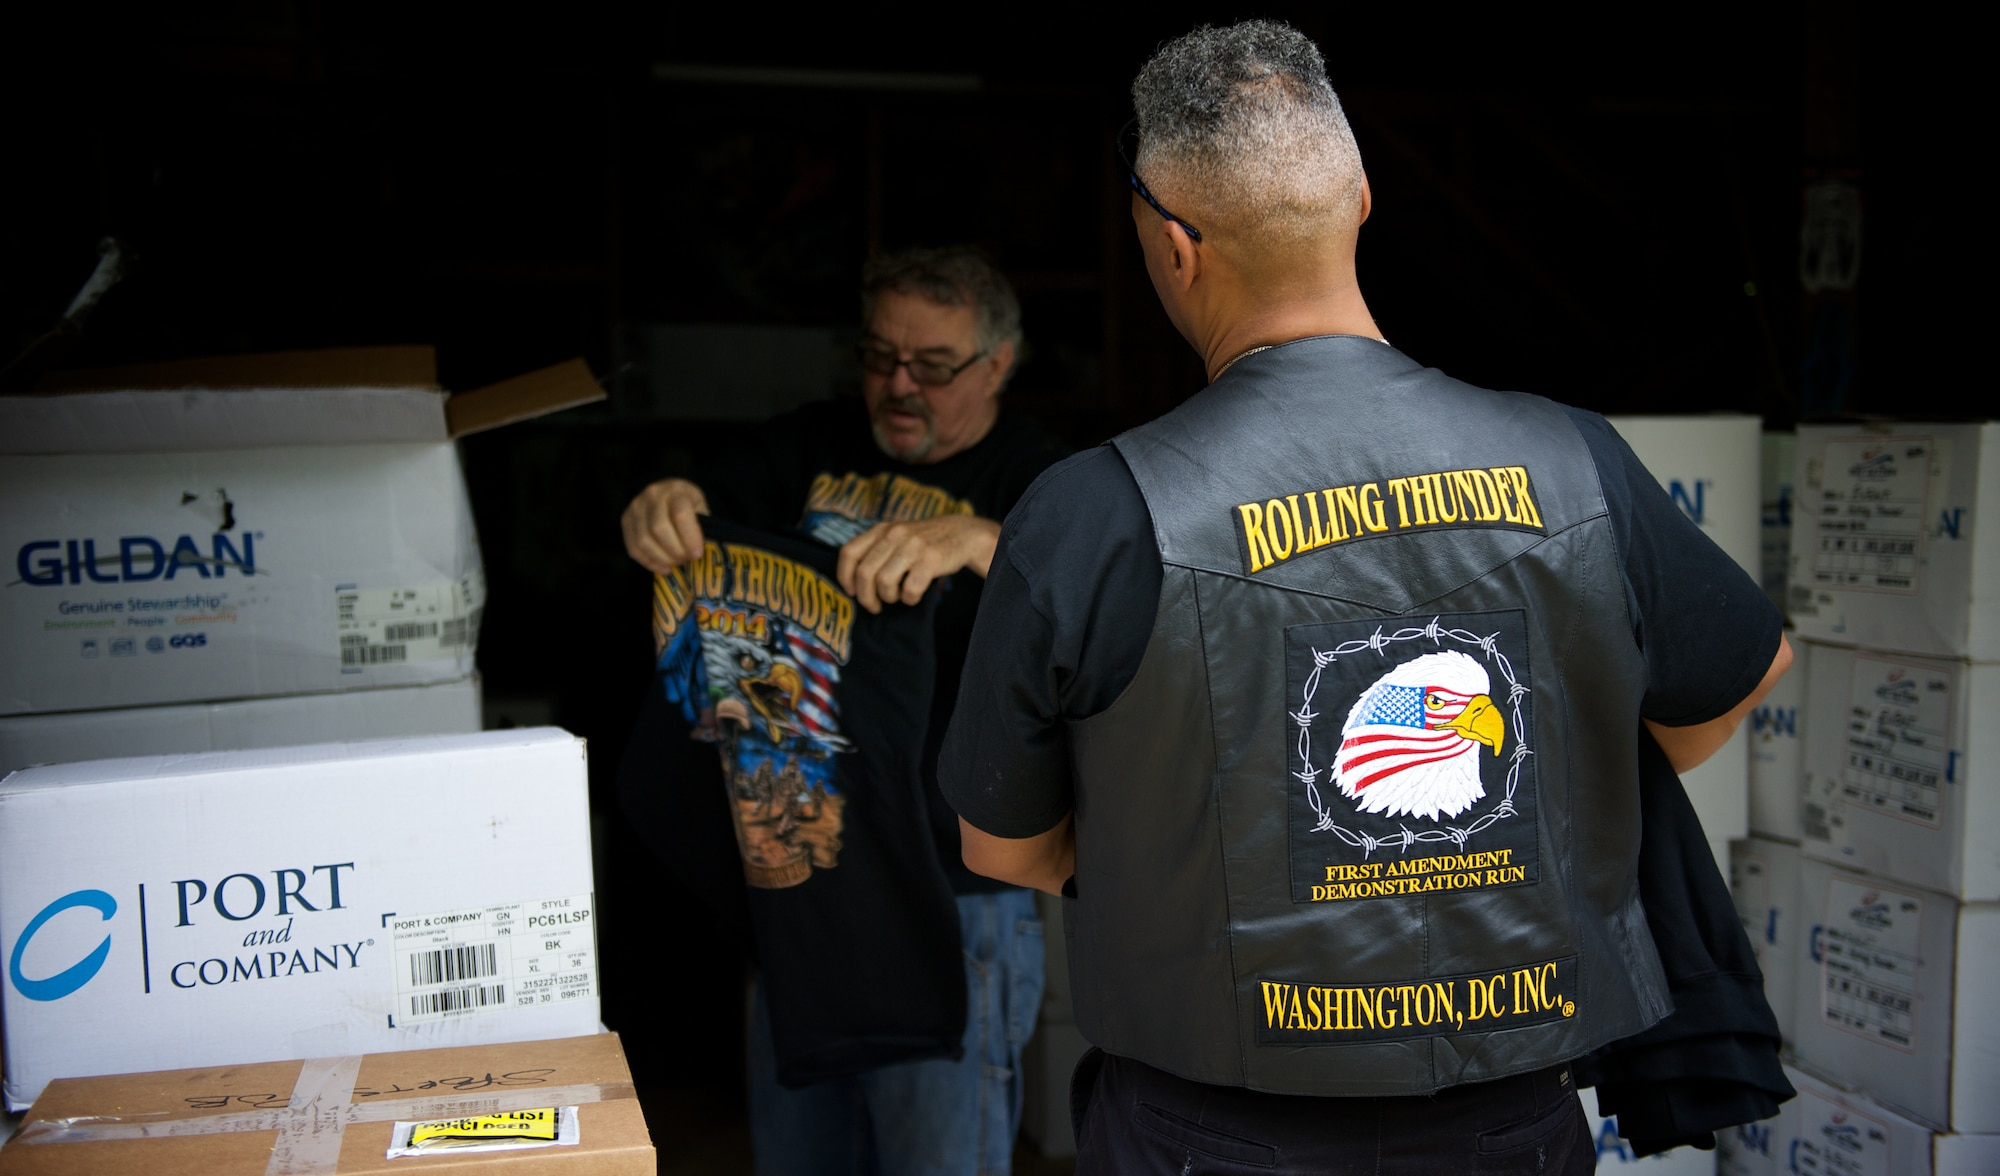 Rob Wilkins, front, and Walt Sides inspect a recent shipment of 2014 souvenir t-shirts for the Rolling Thunder motorcycle demonstration event May 15, 2014 at Sides' farm outside Leesburg, Va. Wilkins is head of Rolling Thunder Magazine and a retired Air Force master sergeant. Sides, a retired Marine first sergeant, original co-founder and executive director of Rolling Thunder, has organized the event since 1988. (U.S. Air Force photo/Senior Airman Alexander W. Riedel)